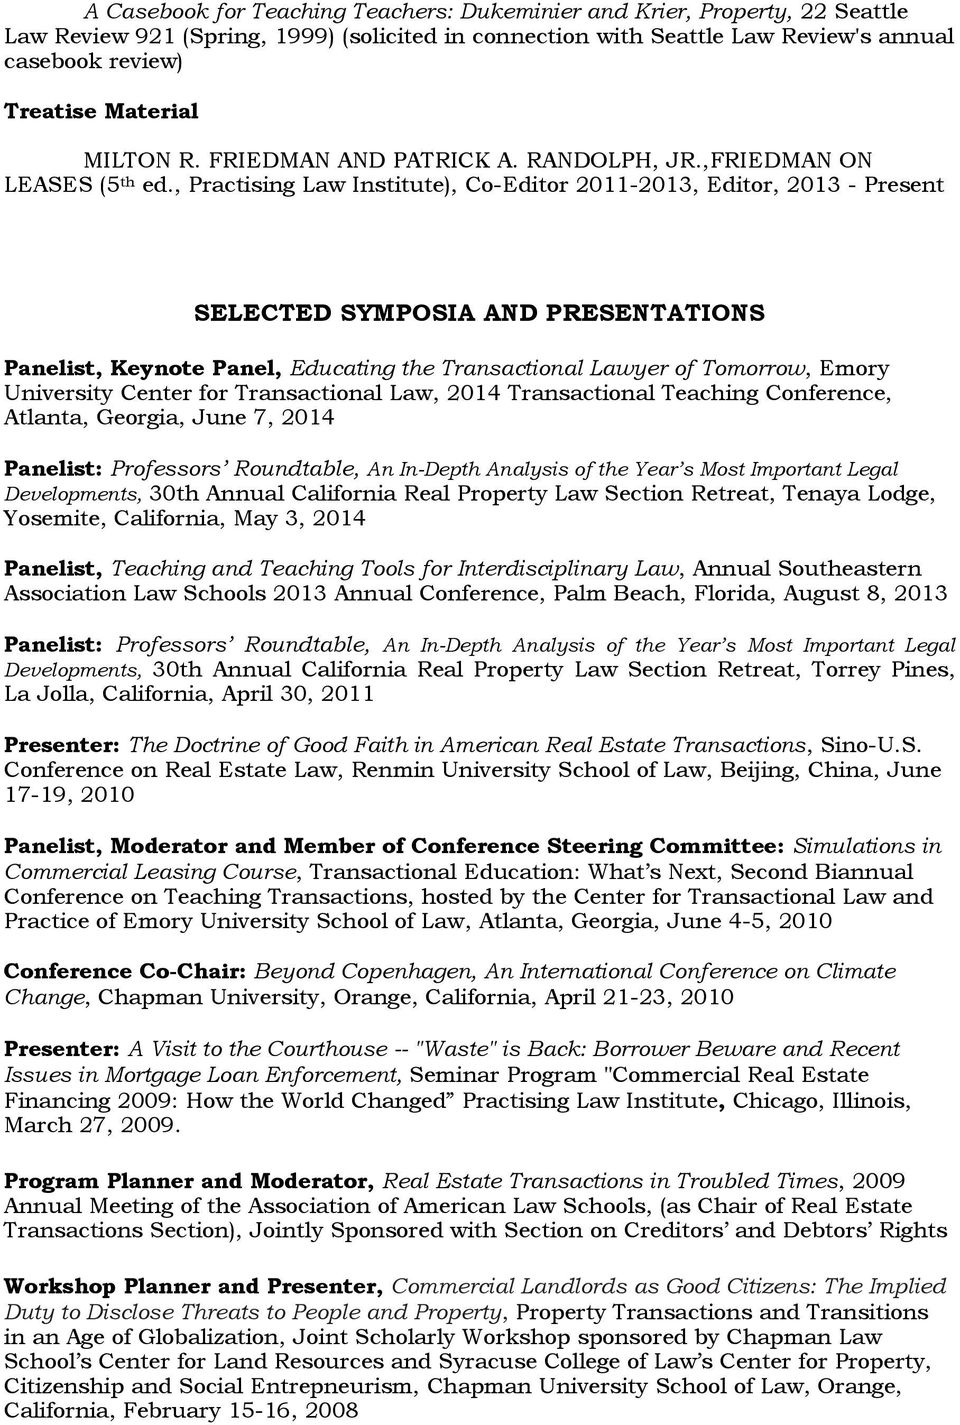 , Practising Law Institute), Co-Editor 2011-2013, Editor, 2013 - Present SELECTED SYMPOSIA AND PRESENTATIONS Panelist, Keynote Panel, Educating the Transactional Lawyer of Tomorrow, Emory University